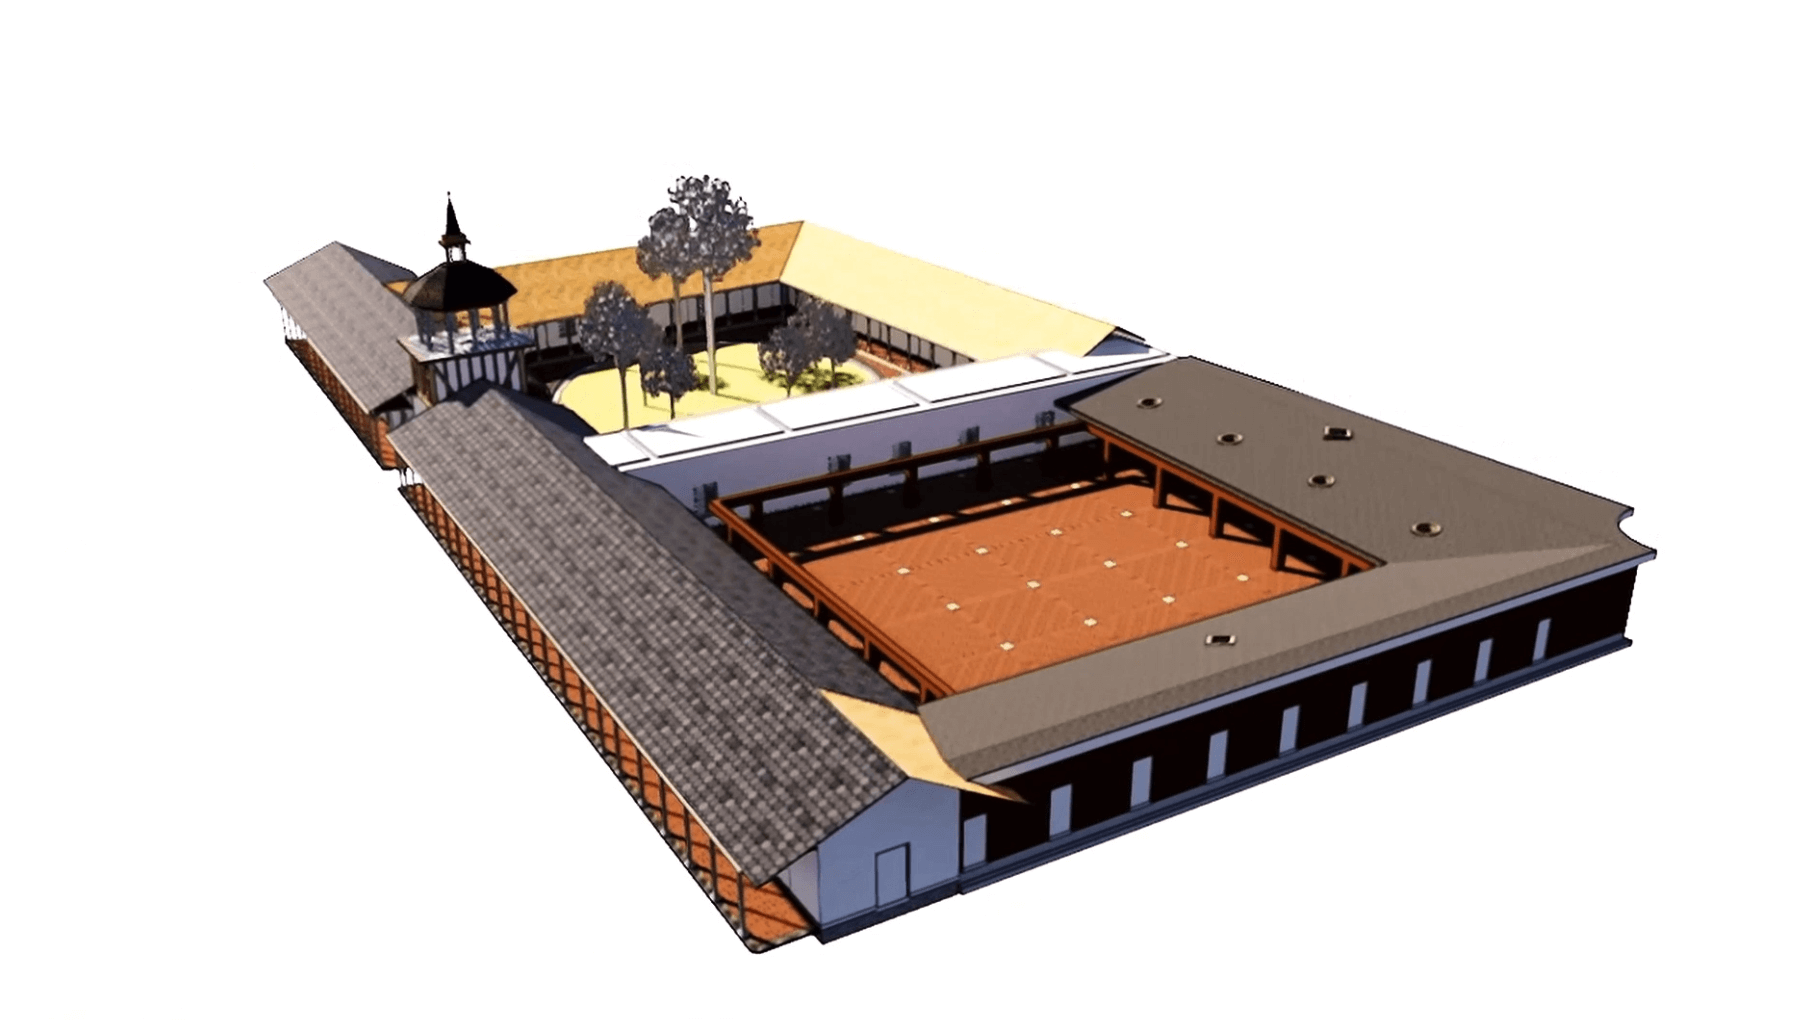 CAD model of historical landmark building